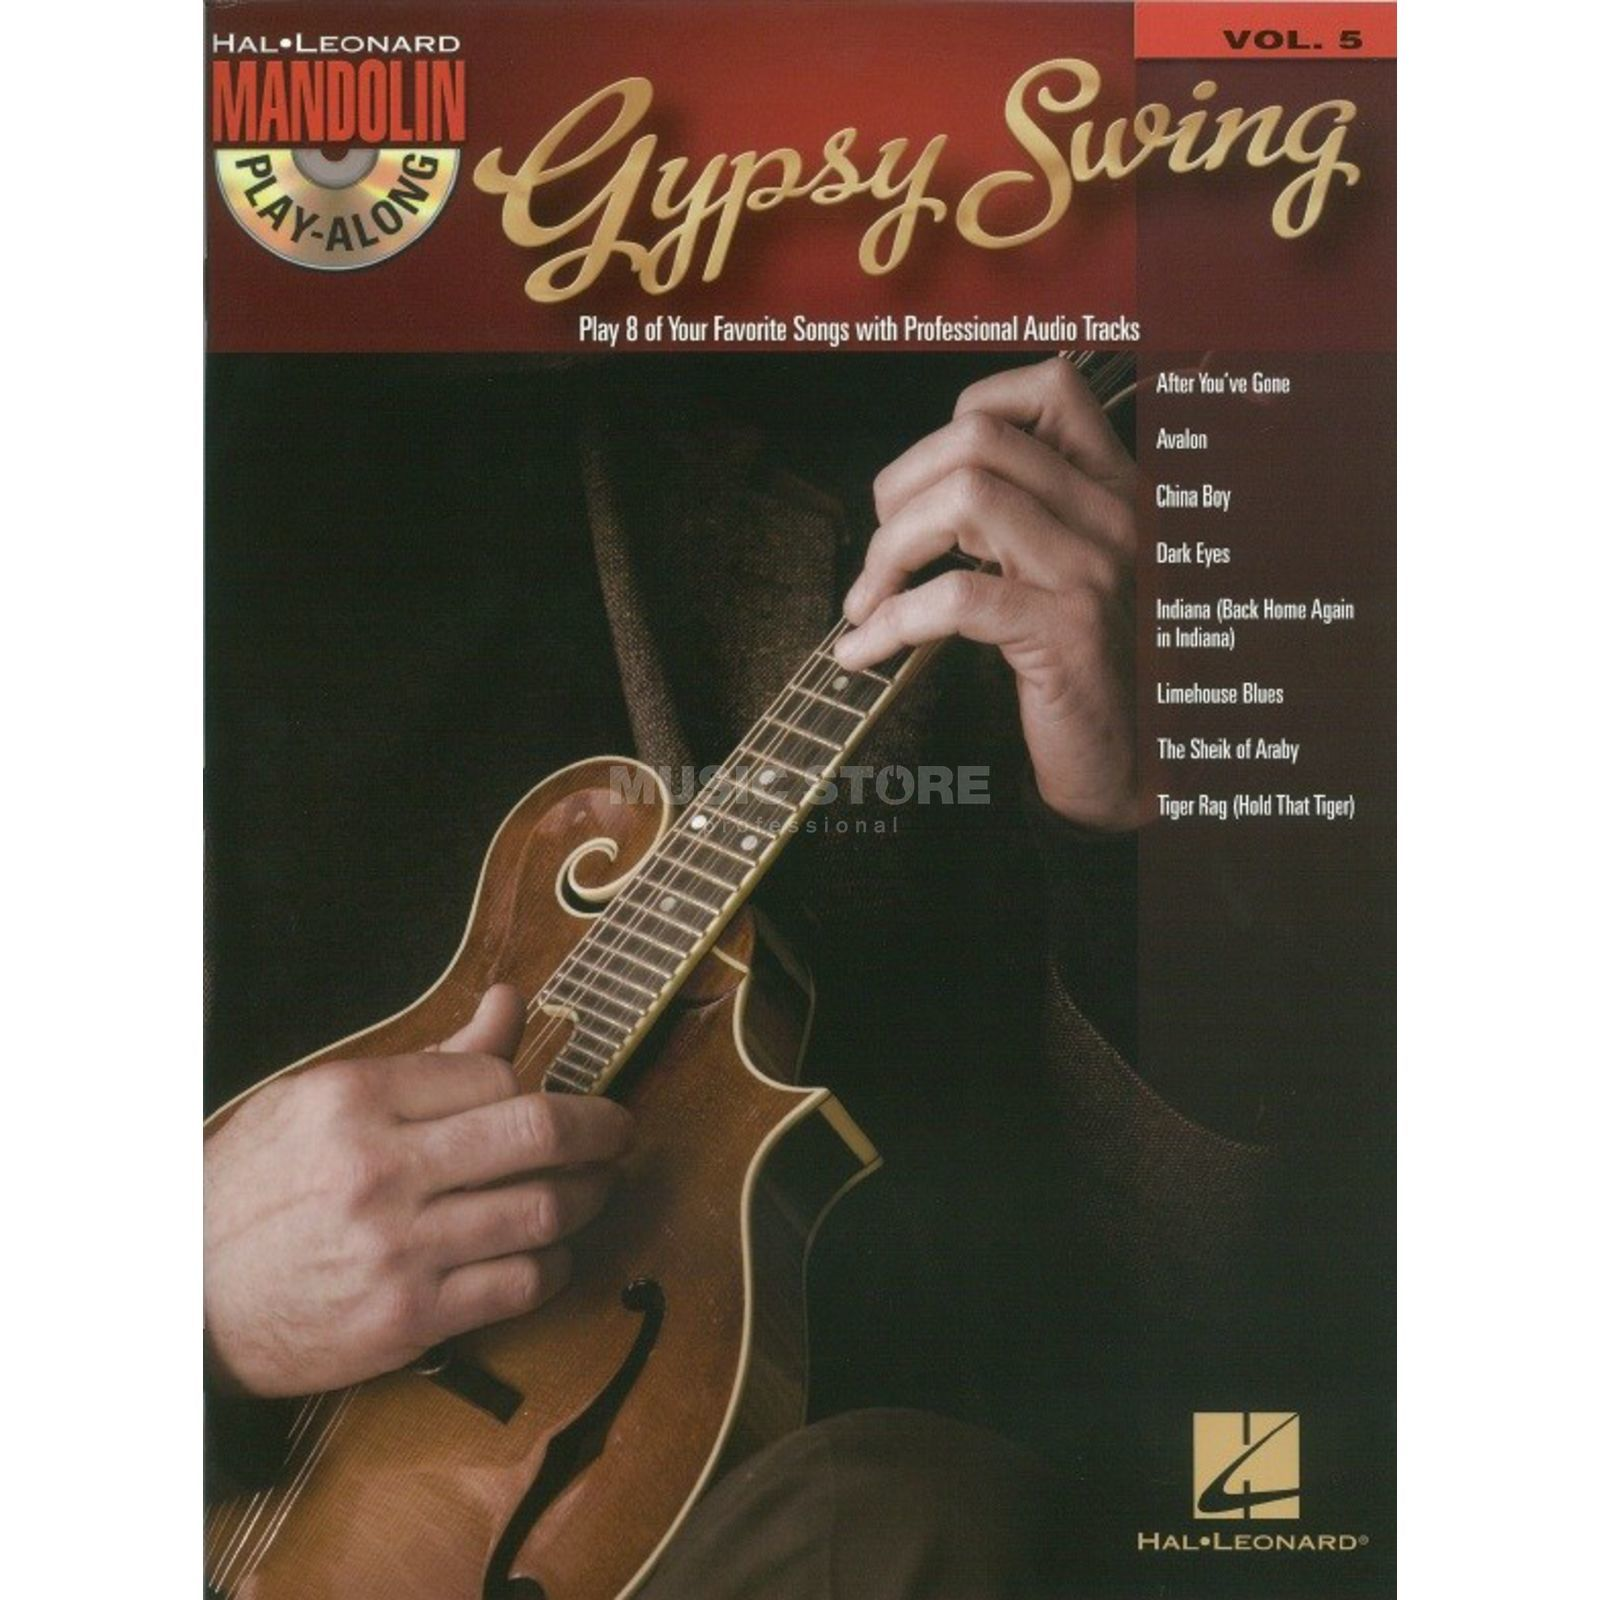 Hal Leonard Mandolin Play-Along: Gypsy Vol. 5, Mandolin Produktbillede